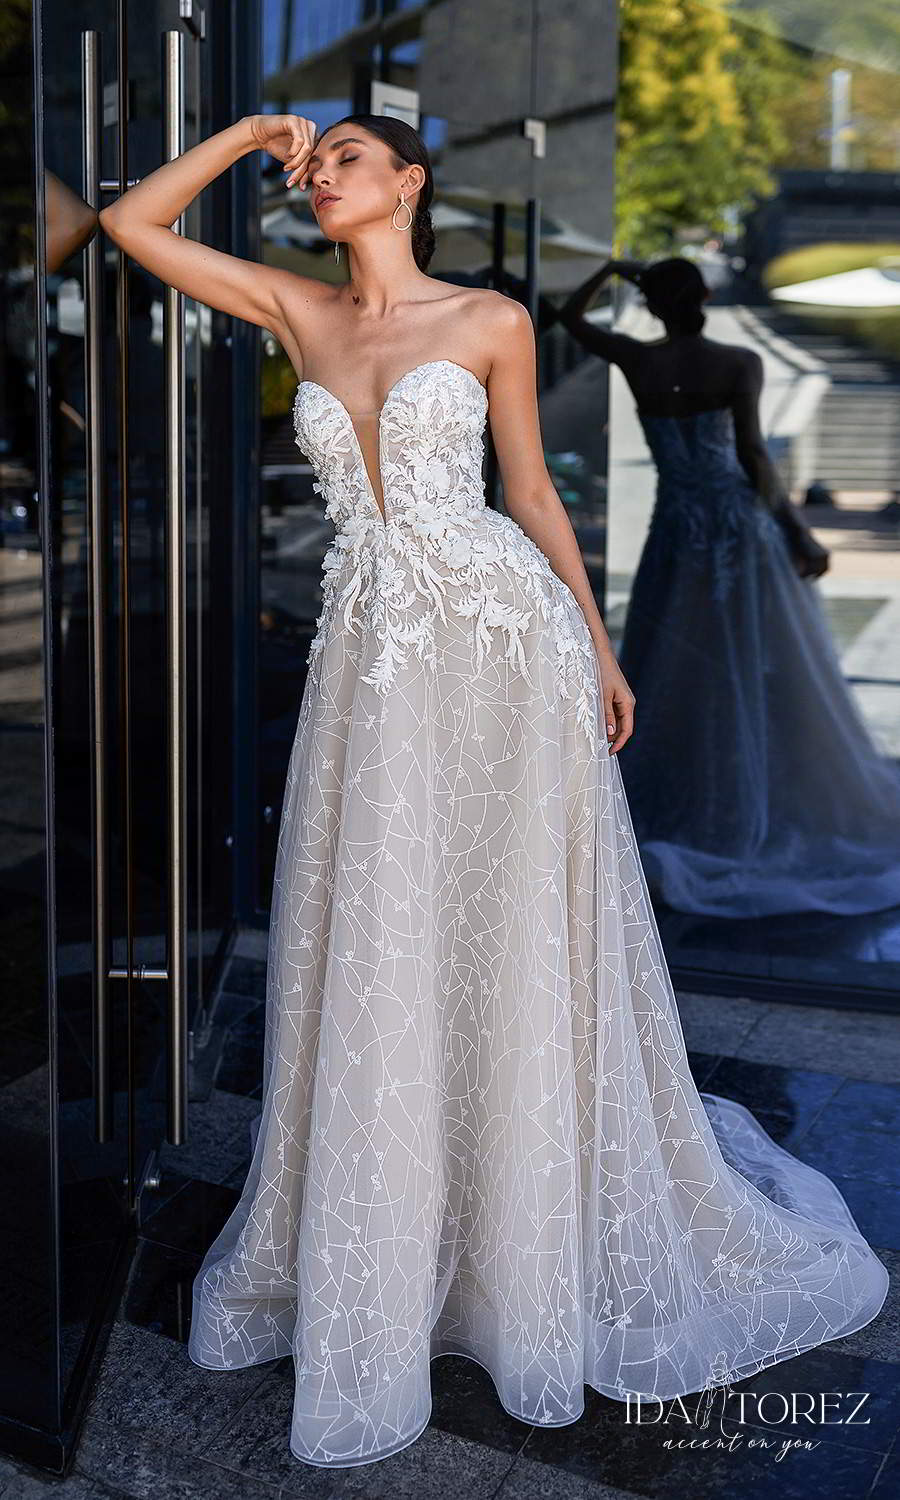 ida torez 2021 bridal strapless sweetheart neckline fully embellished a line ball gown wedding dress chapel train (desire) mv